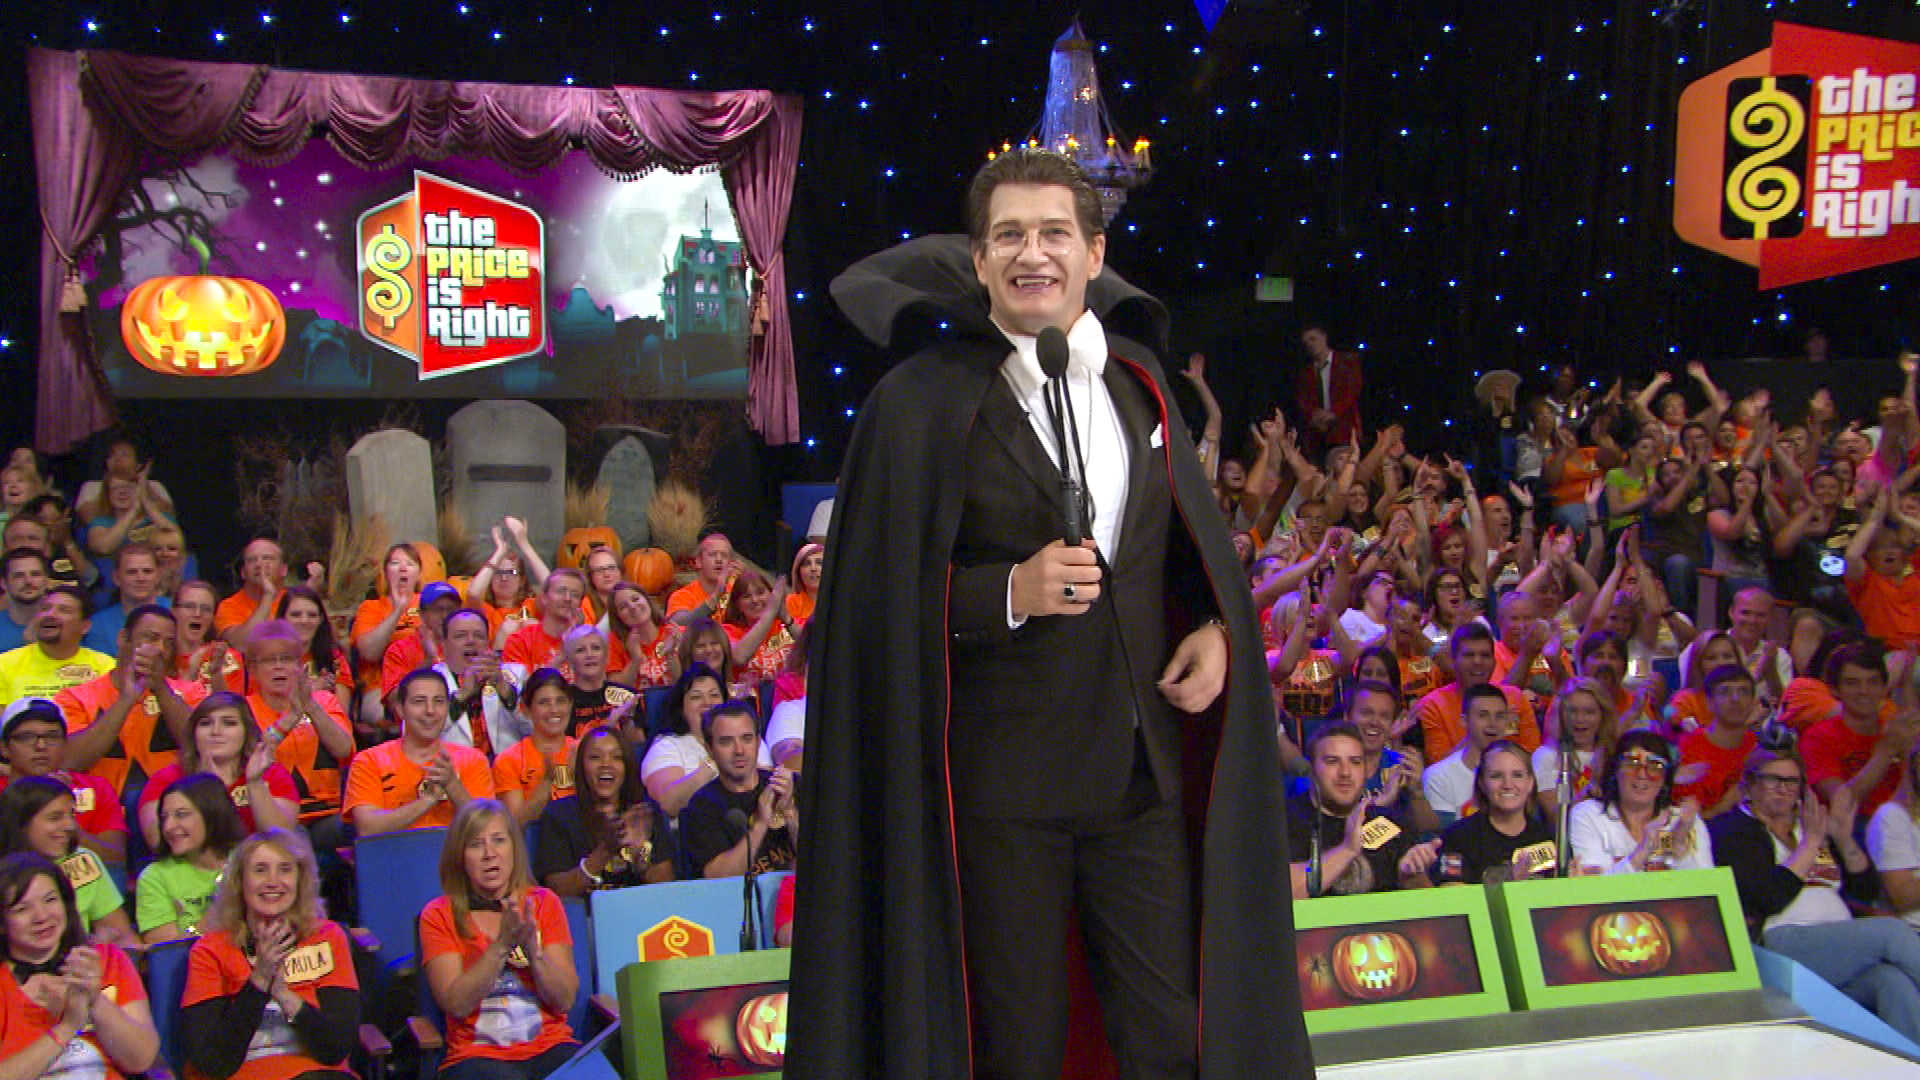 Cbs Halloween Specials 2020 Halloween Special!   The Price Is Right Photos   CBS.com